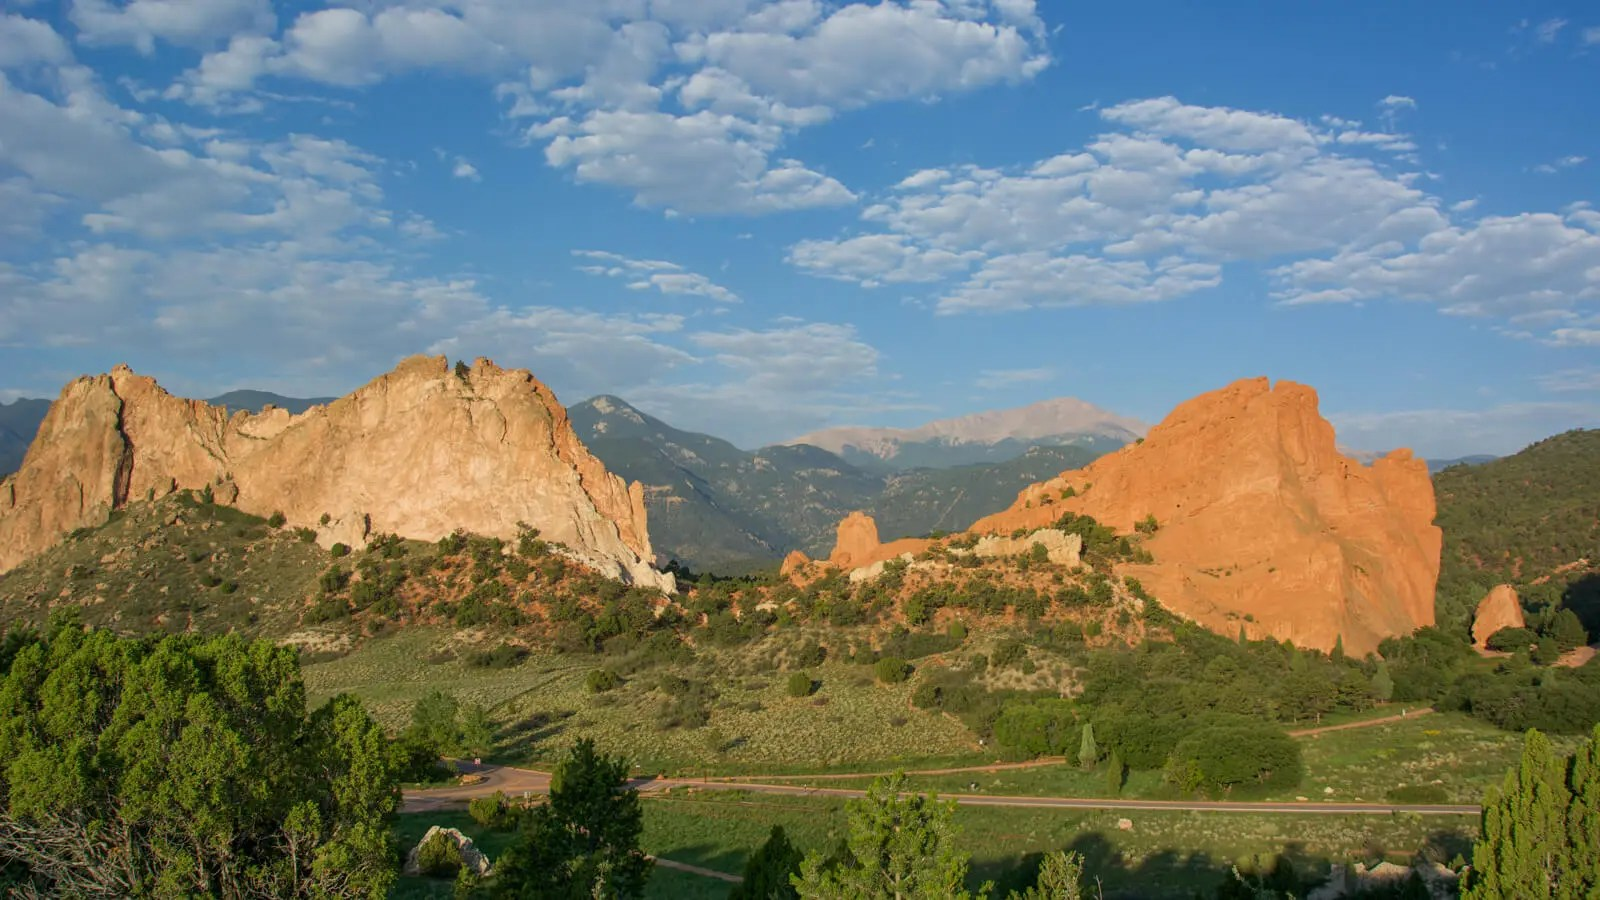 Garden Of The Gods with Pikes Peak in the background, Colorado Springs, Colorado, USA